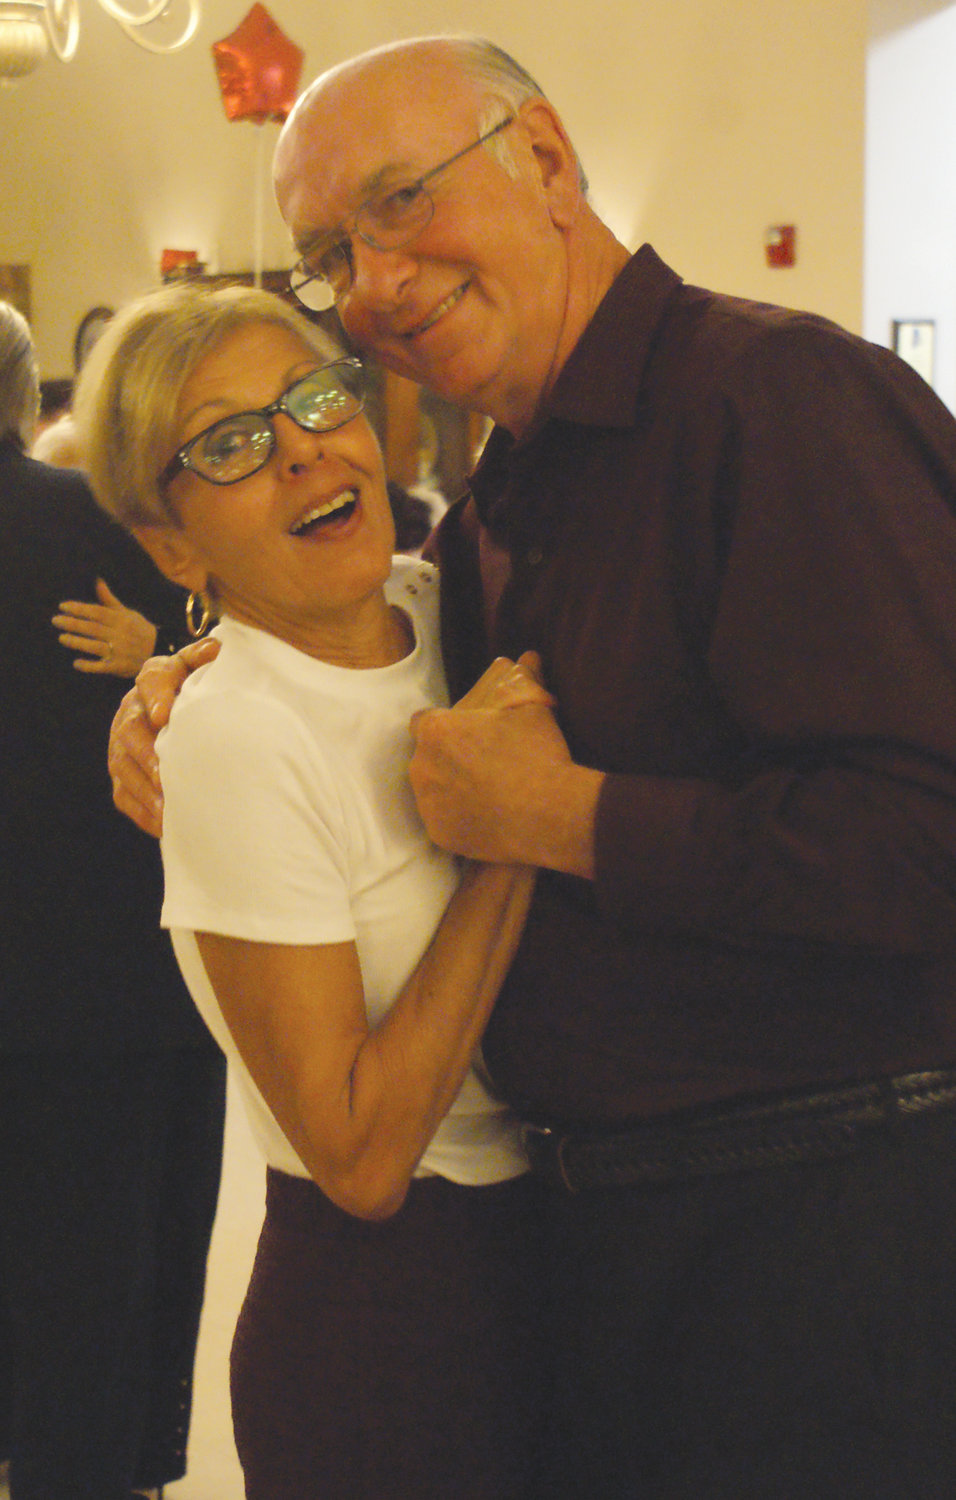 MET IN THE MARKET: Carolyn Box enjoyed her dance with her boyfriend, Steve Thomas, who she met in the meat department of Stop & Shop in Warwick. They said it was a wonderful evening at the Johnston Senior Center.